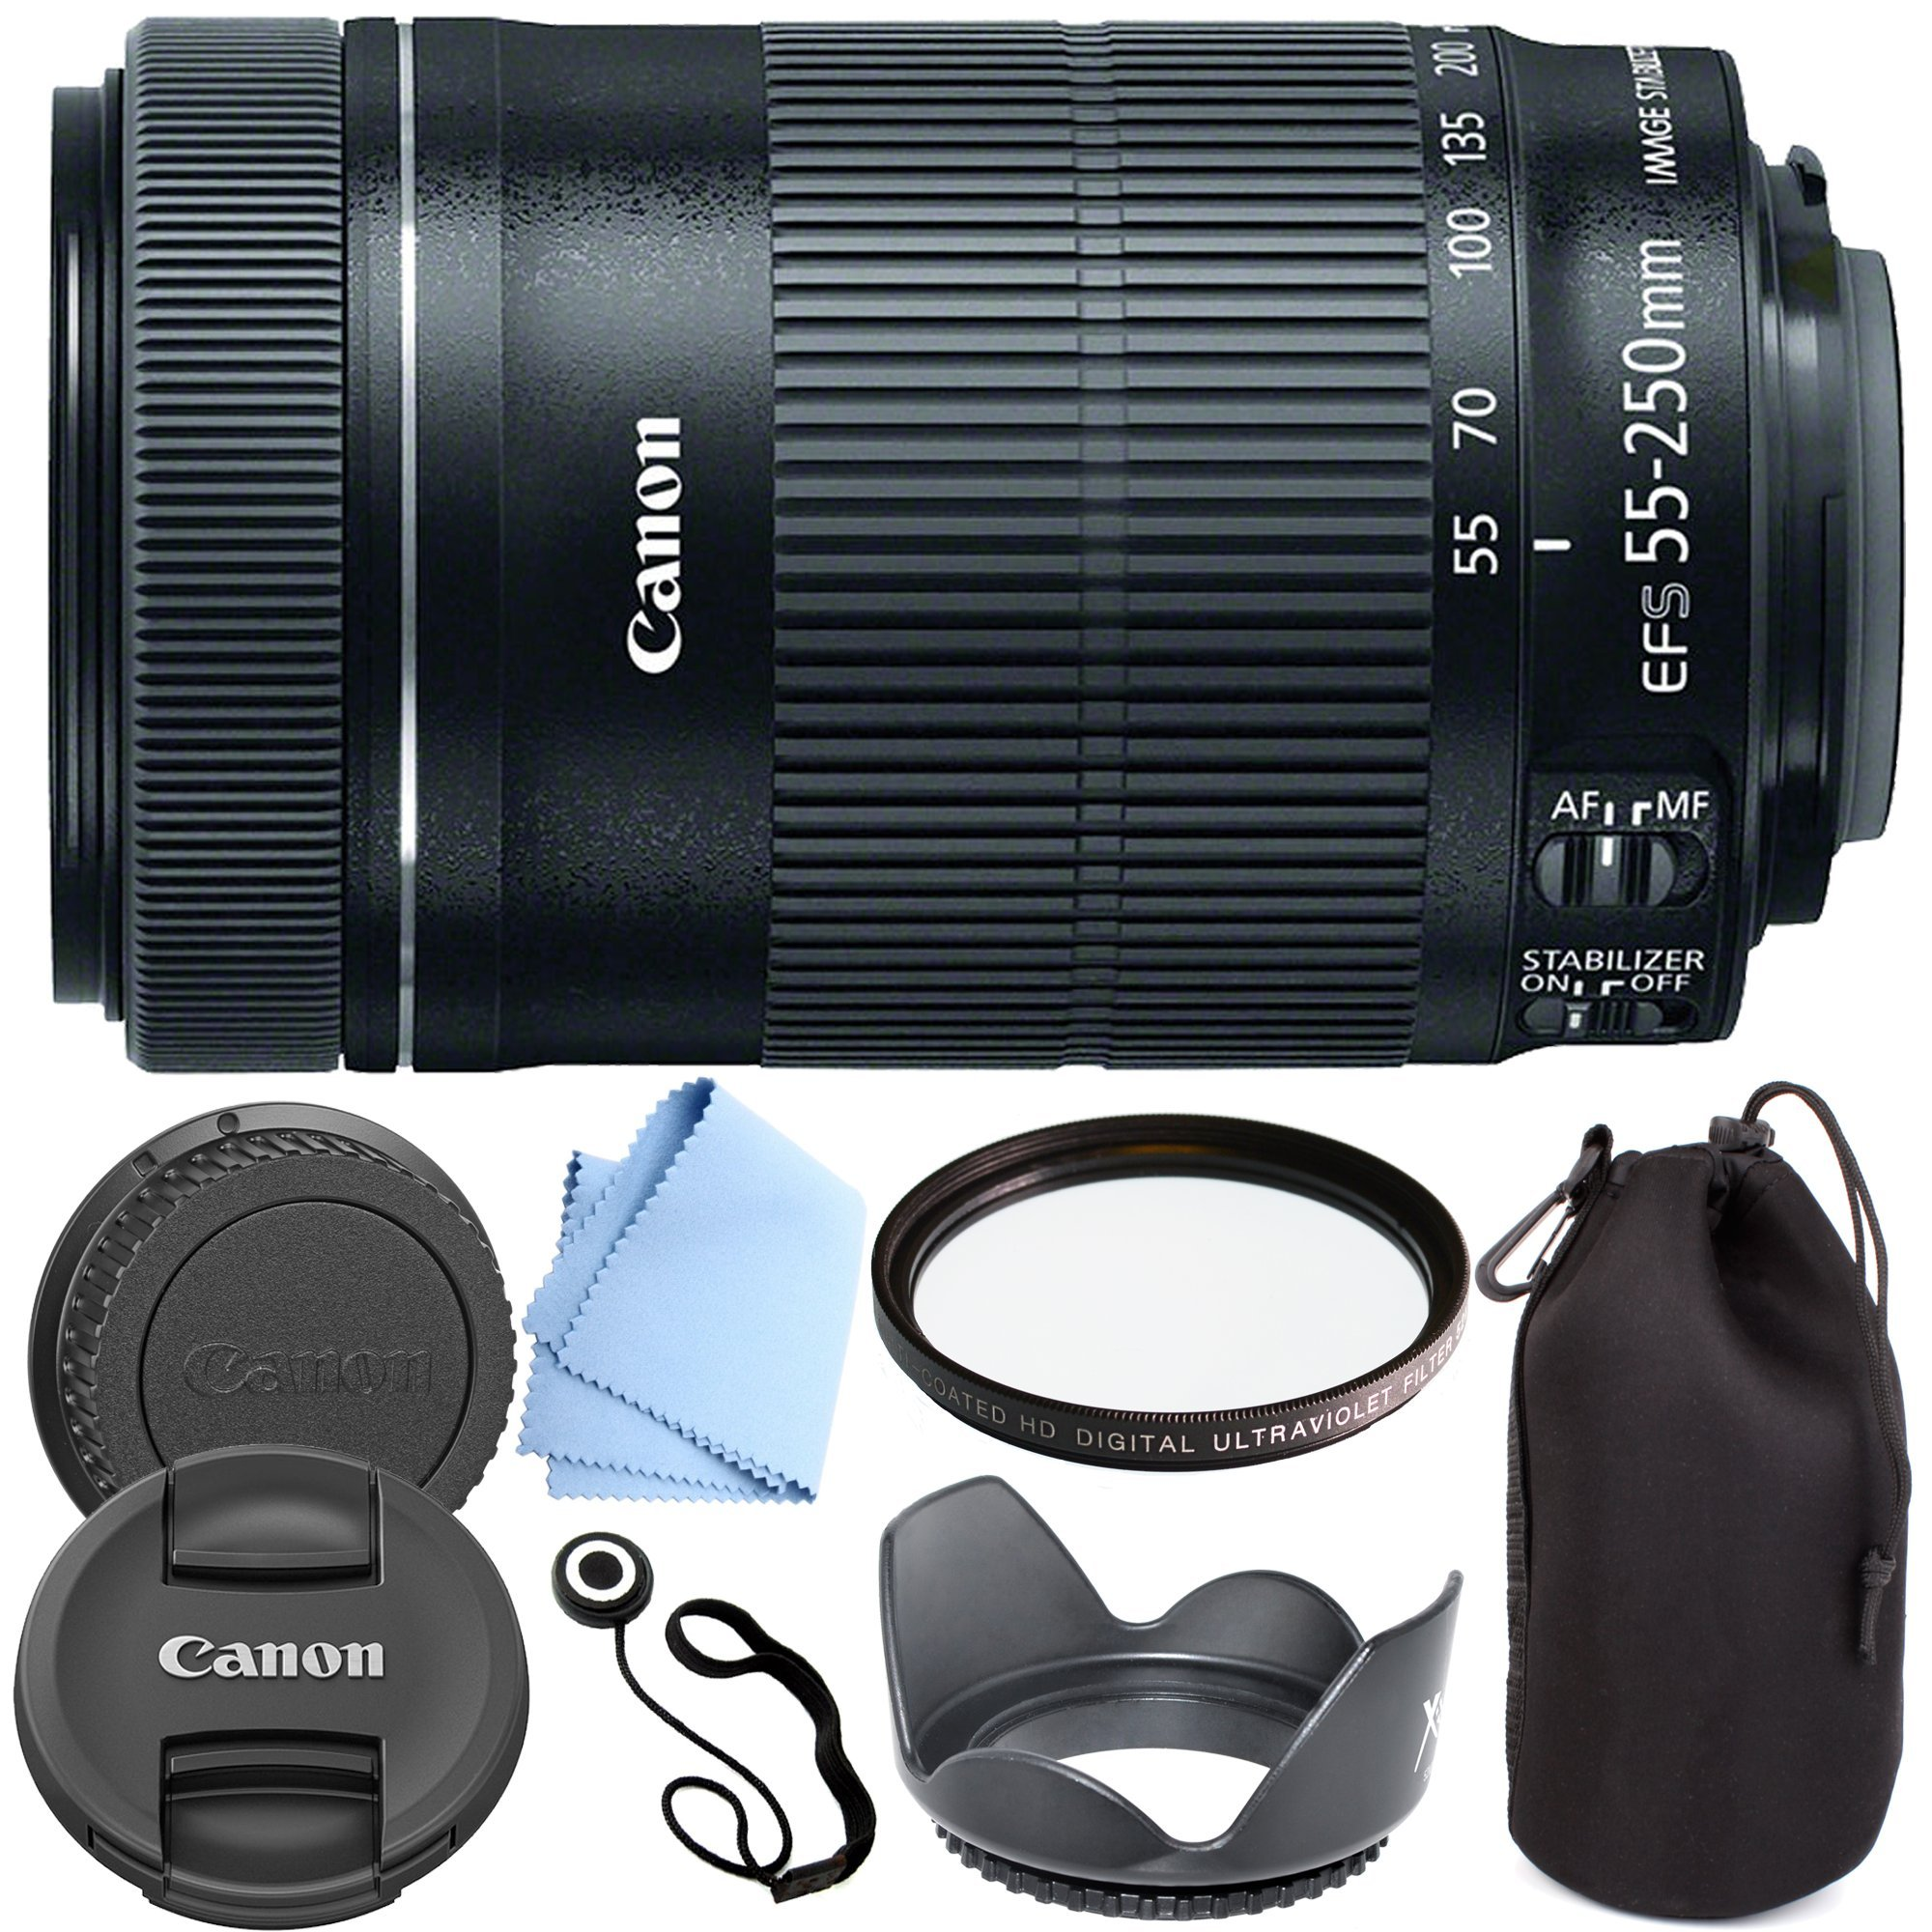 Canon EF-S 55-250mm F4-5.6 IS STM - International Version (No Warranty) Zoom Lens for for Canon EOS 7D, 60D, EOS Rebel SL1, T1i, T2i, T3, T3i, T4i, T5i, XS, XSi, XT, XTi Digital SLR Cameras + Shop Smart Deals Deluxe Kit 55-250mm STM by Canon